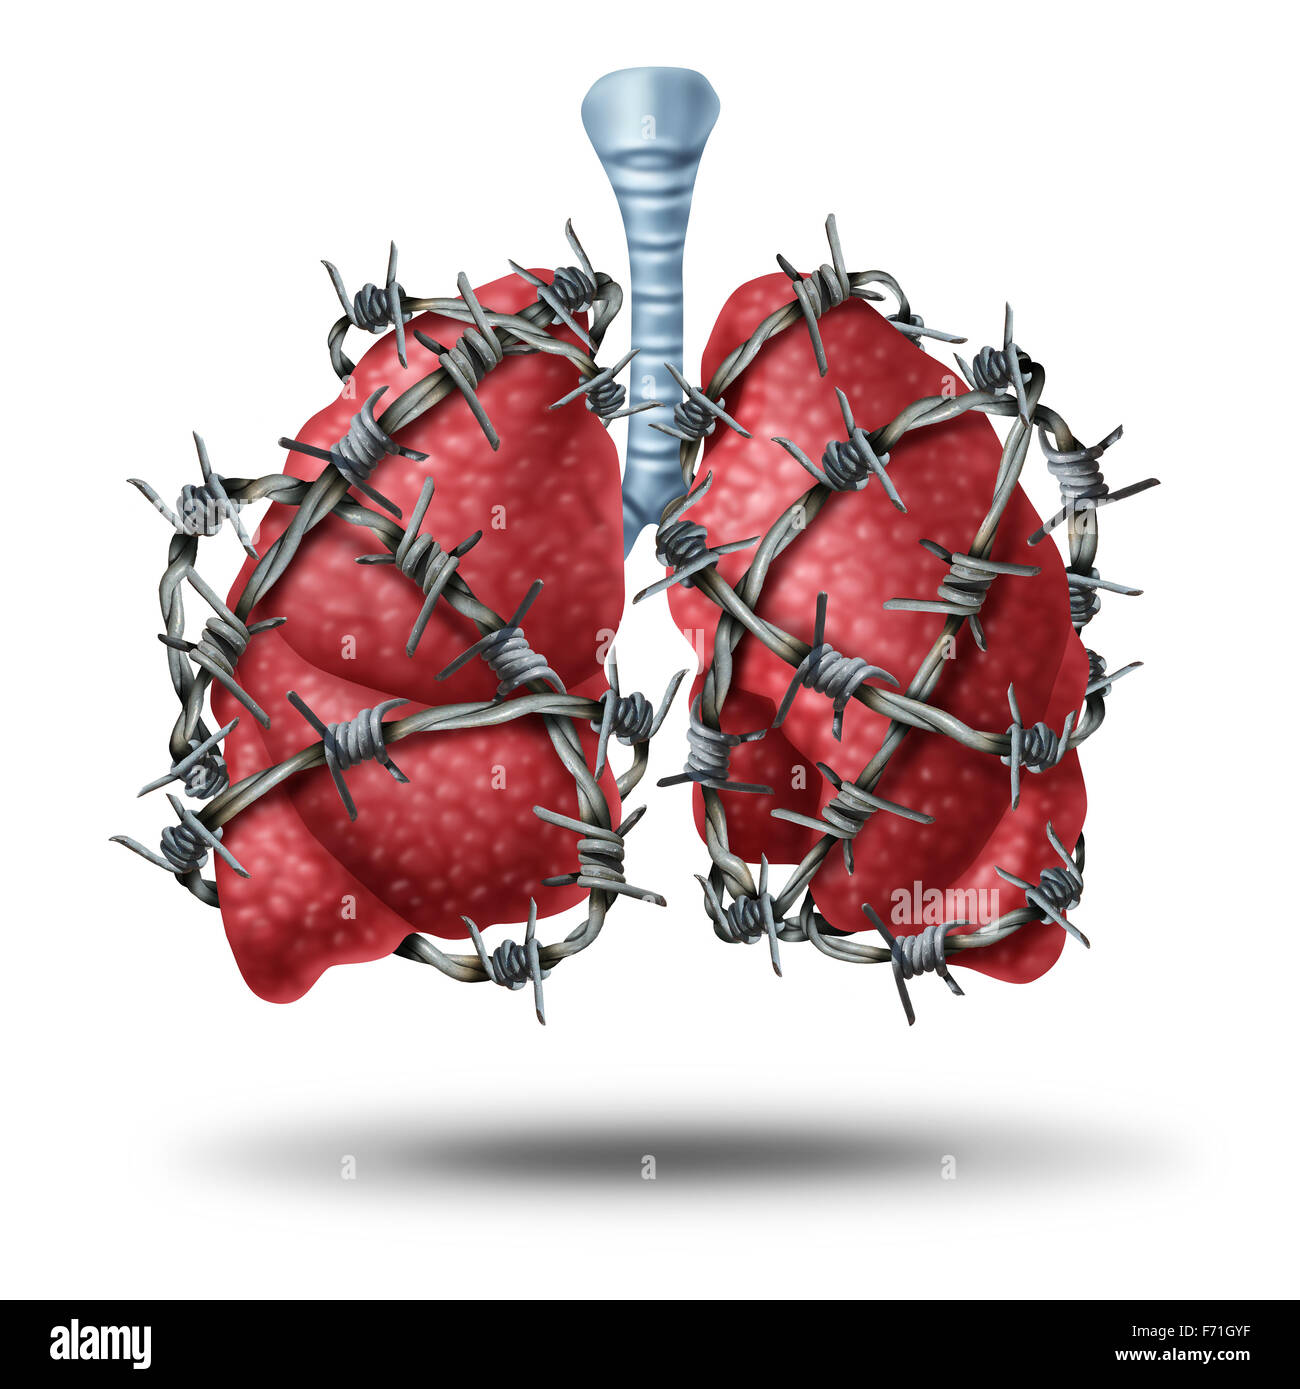 Lung pain medical concept as a pair of human lungs organ wrapped with dangerous barbed or barb wire as a health - Stock Image